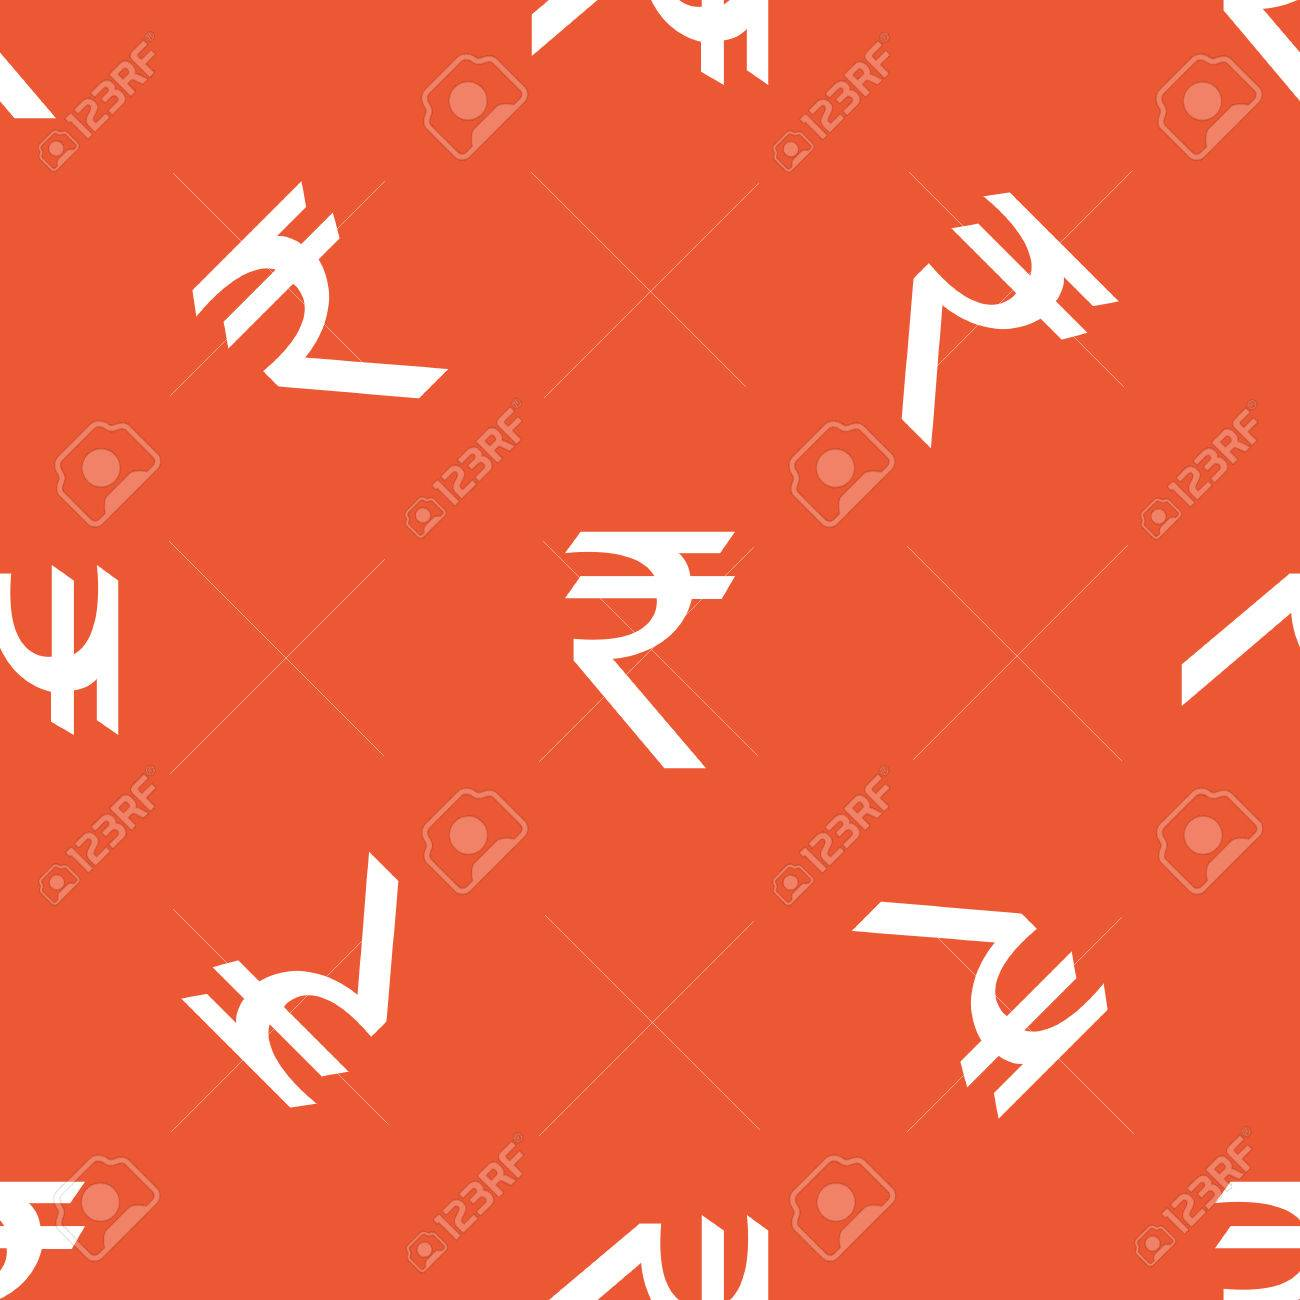 Ascii code for rupee symbol gallery symbol and sign ideas rupee symbol on keyboard choice image symbol and sign ideas image of indian rupee symbol repeated biocorpaavc